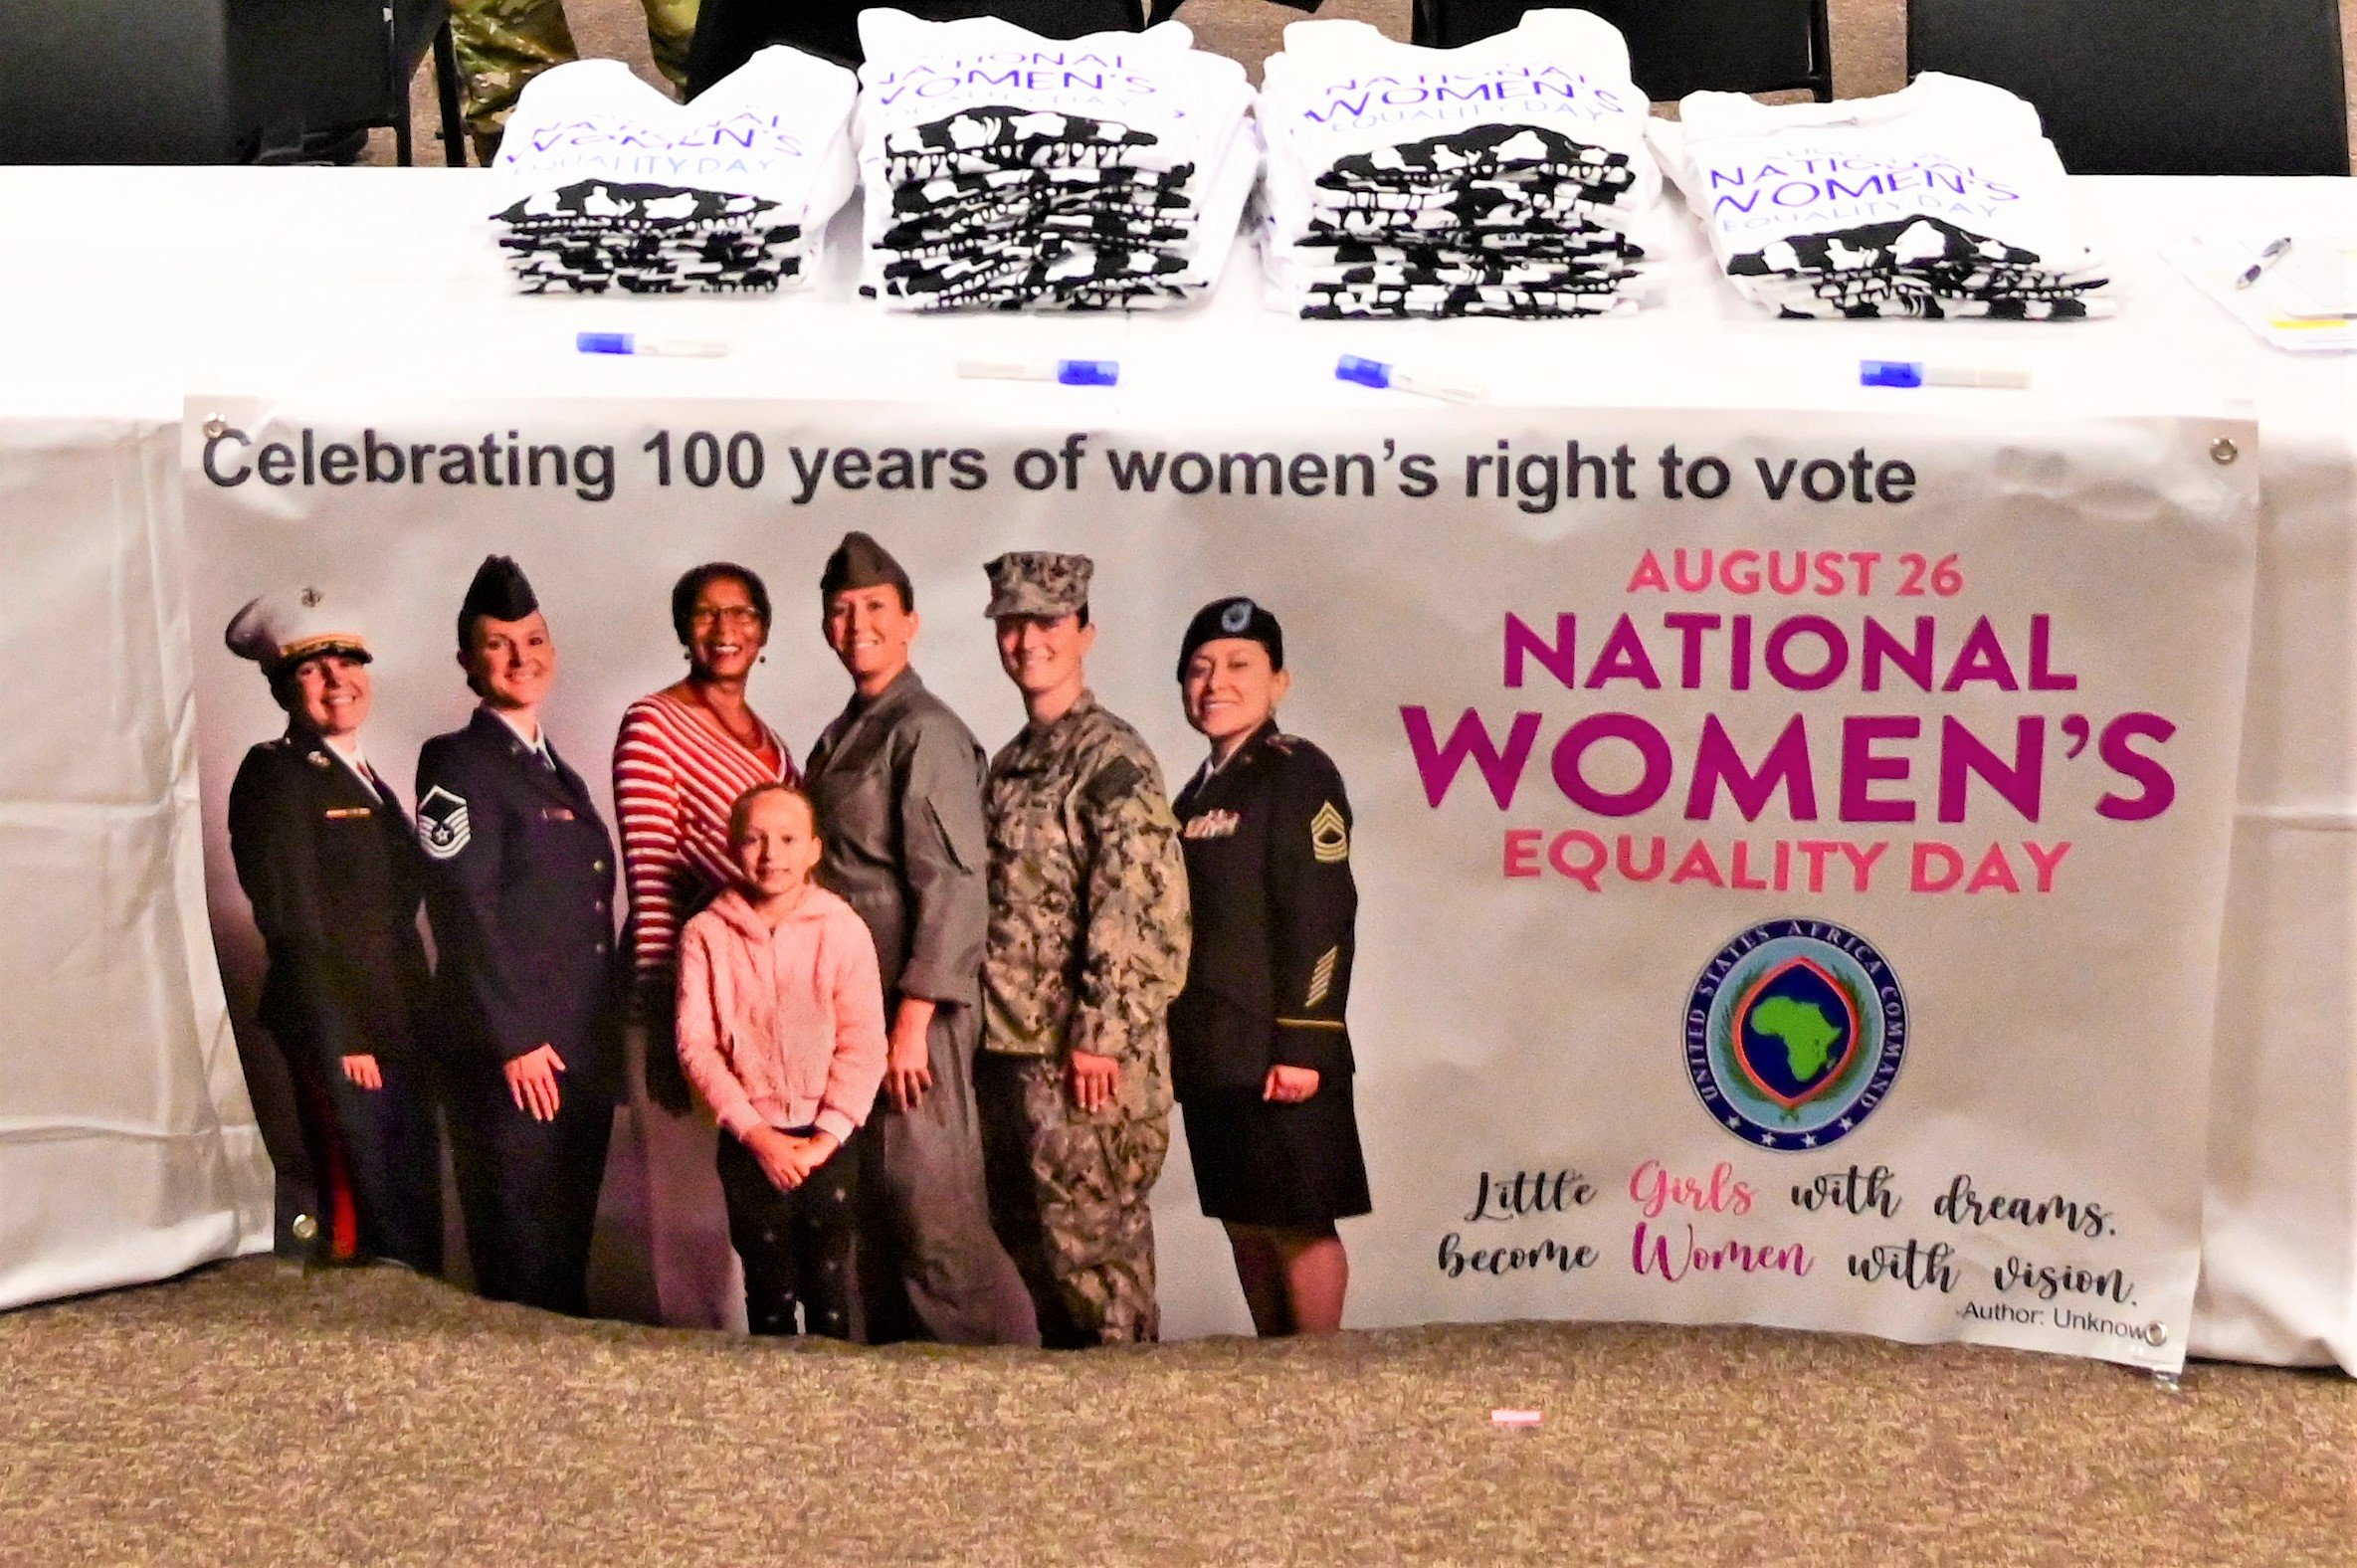 2020 marks the 100th Anniversary of the 19th Amendment